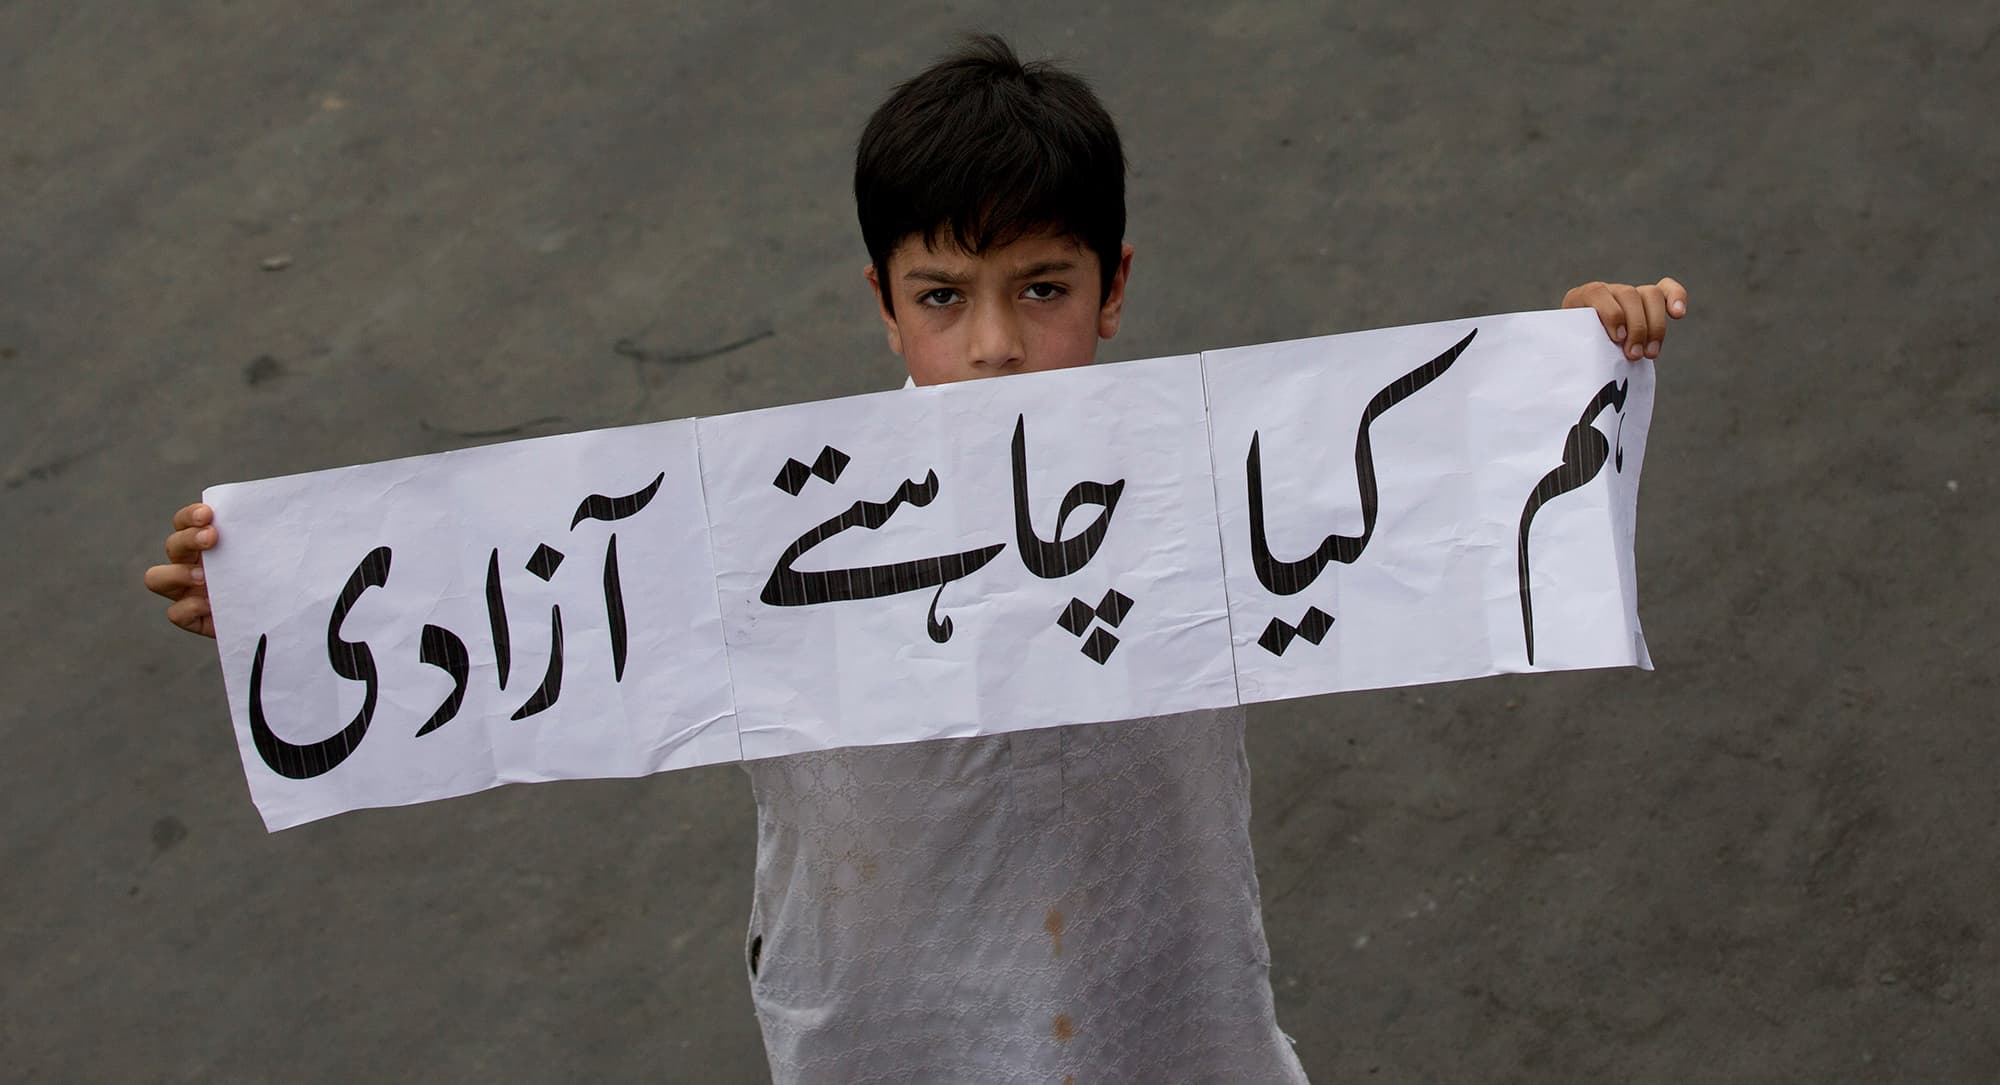 "In this Friday, Aug. 9, 2019, photo, a Kashmiri boy holds a banner that reads ""What do we want- Freedom,"" and participates in a protest march in Srinagar, Indian controlled Kashmir. Authorities enforcing a strict curfew in Indian-administered Kashmir will bring in trucks of essential supplies for an Islamic festival next week, as the divided Himalayan region remained in a lockdown following India's decision to strip it of its constitutional autonomy. The indefinite 24-hour curfew was briefly eased on Friday for wee"